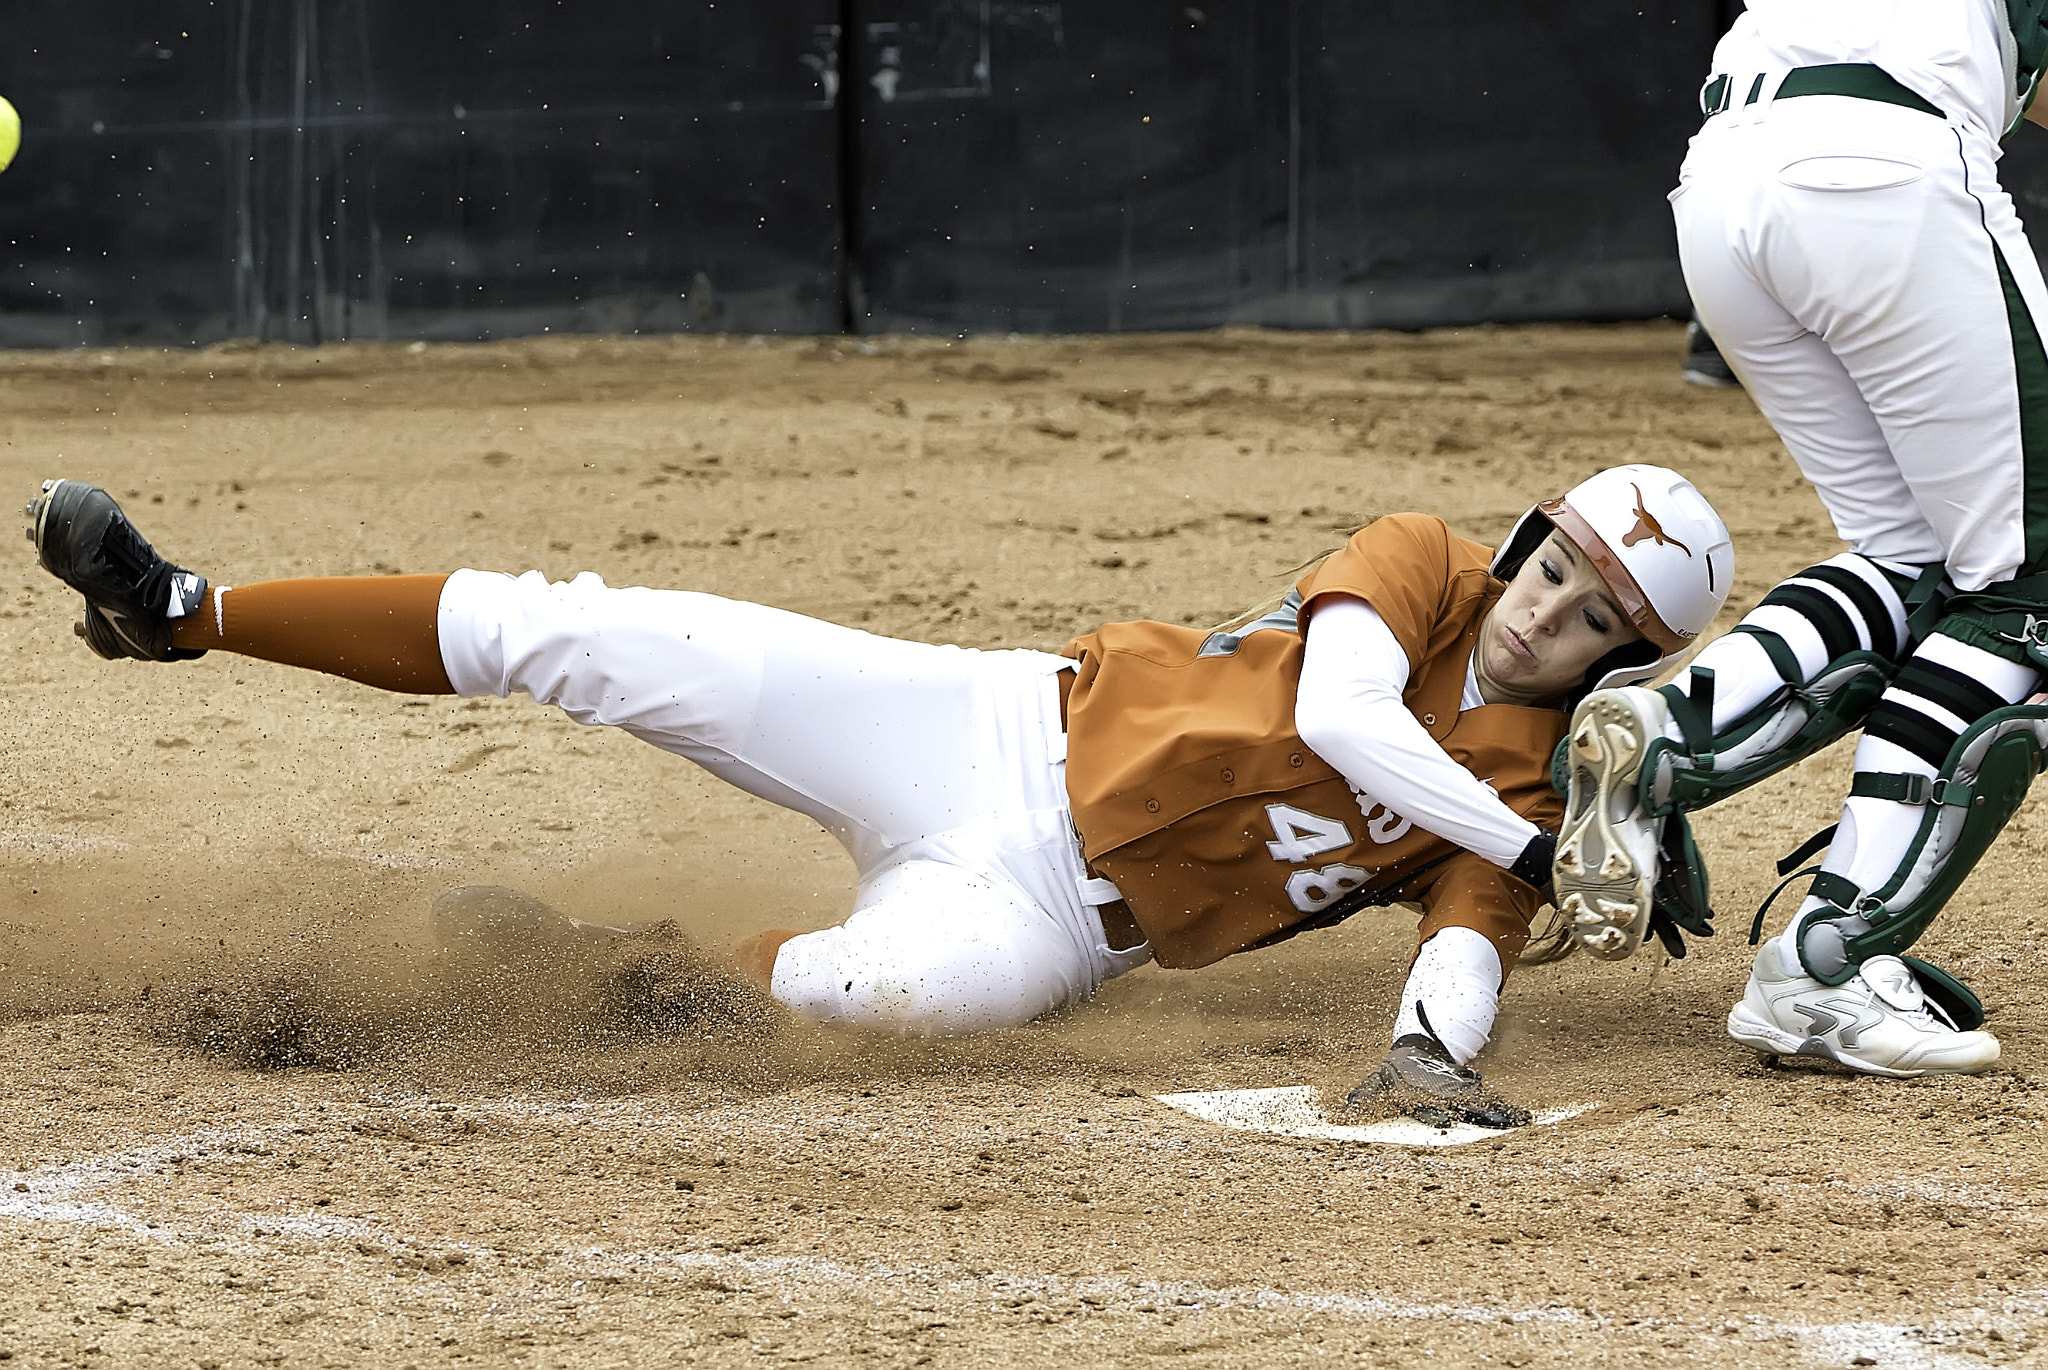 Photograph UT Softball Slide by AustinPixels   on 500px